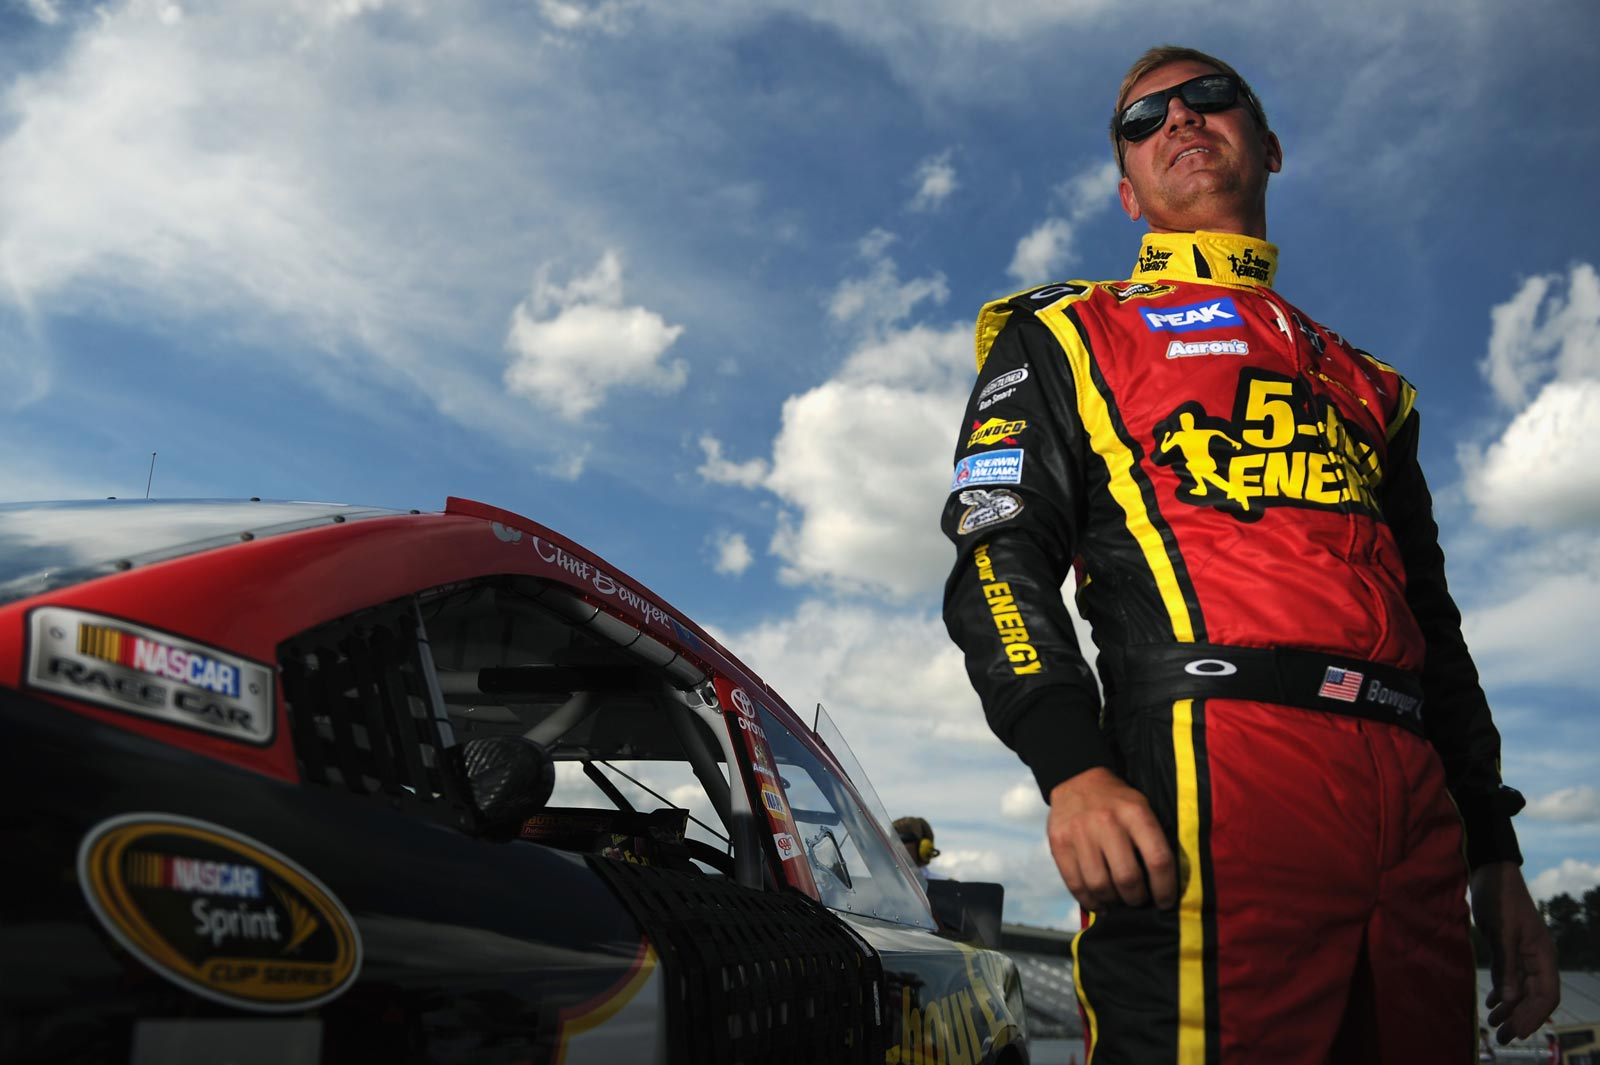 Clint-Bowyer-NASCAR-Sprint-Cup-Series-New-Hampshire-July-2013